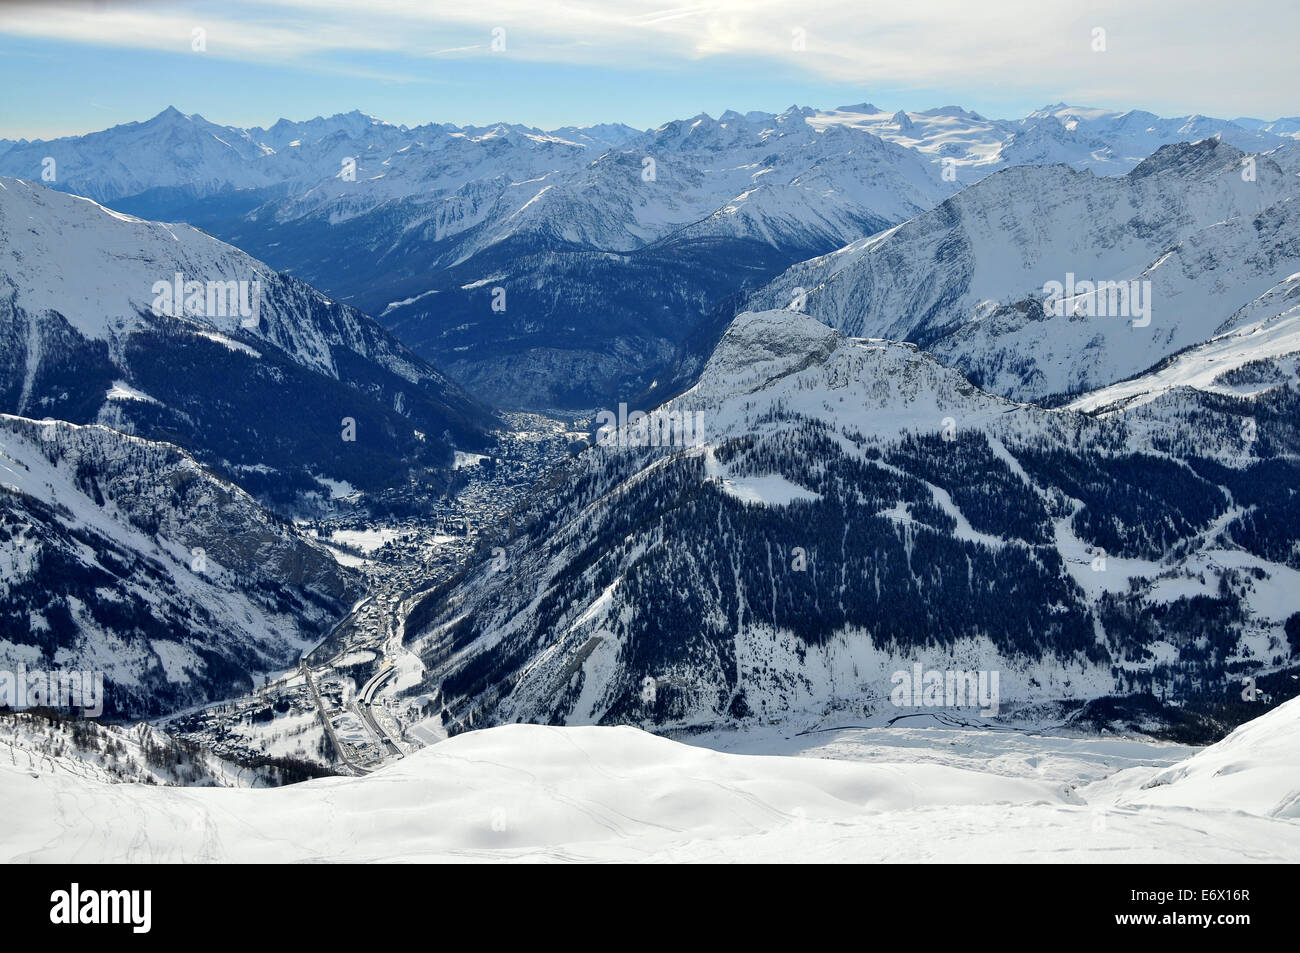 Under Mont Blanc with view towards Courmayeur, Aosta Valley, Italy Stock Photo